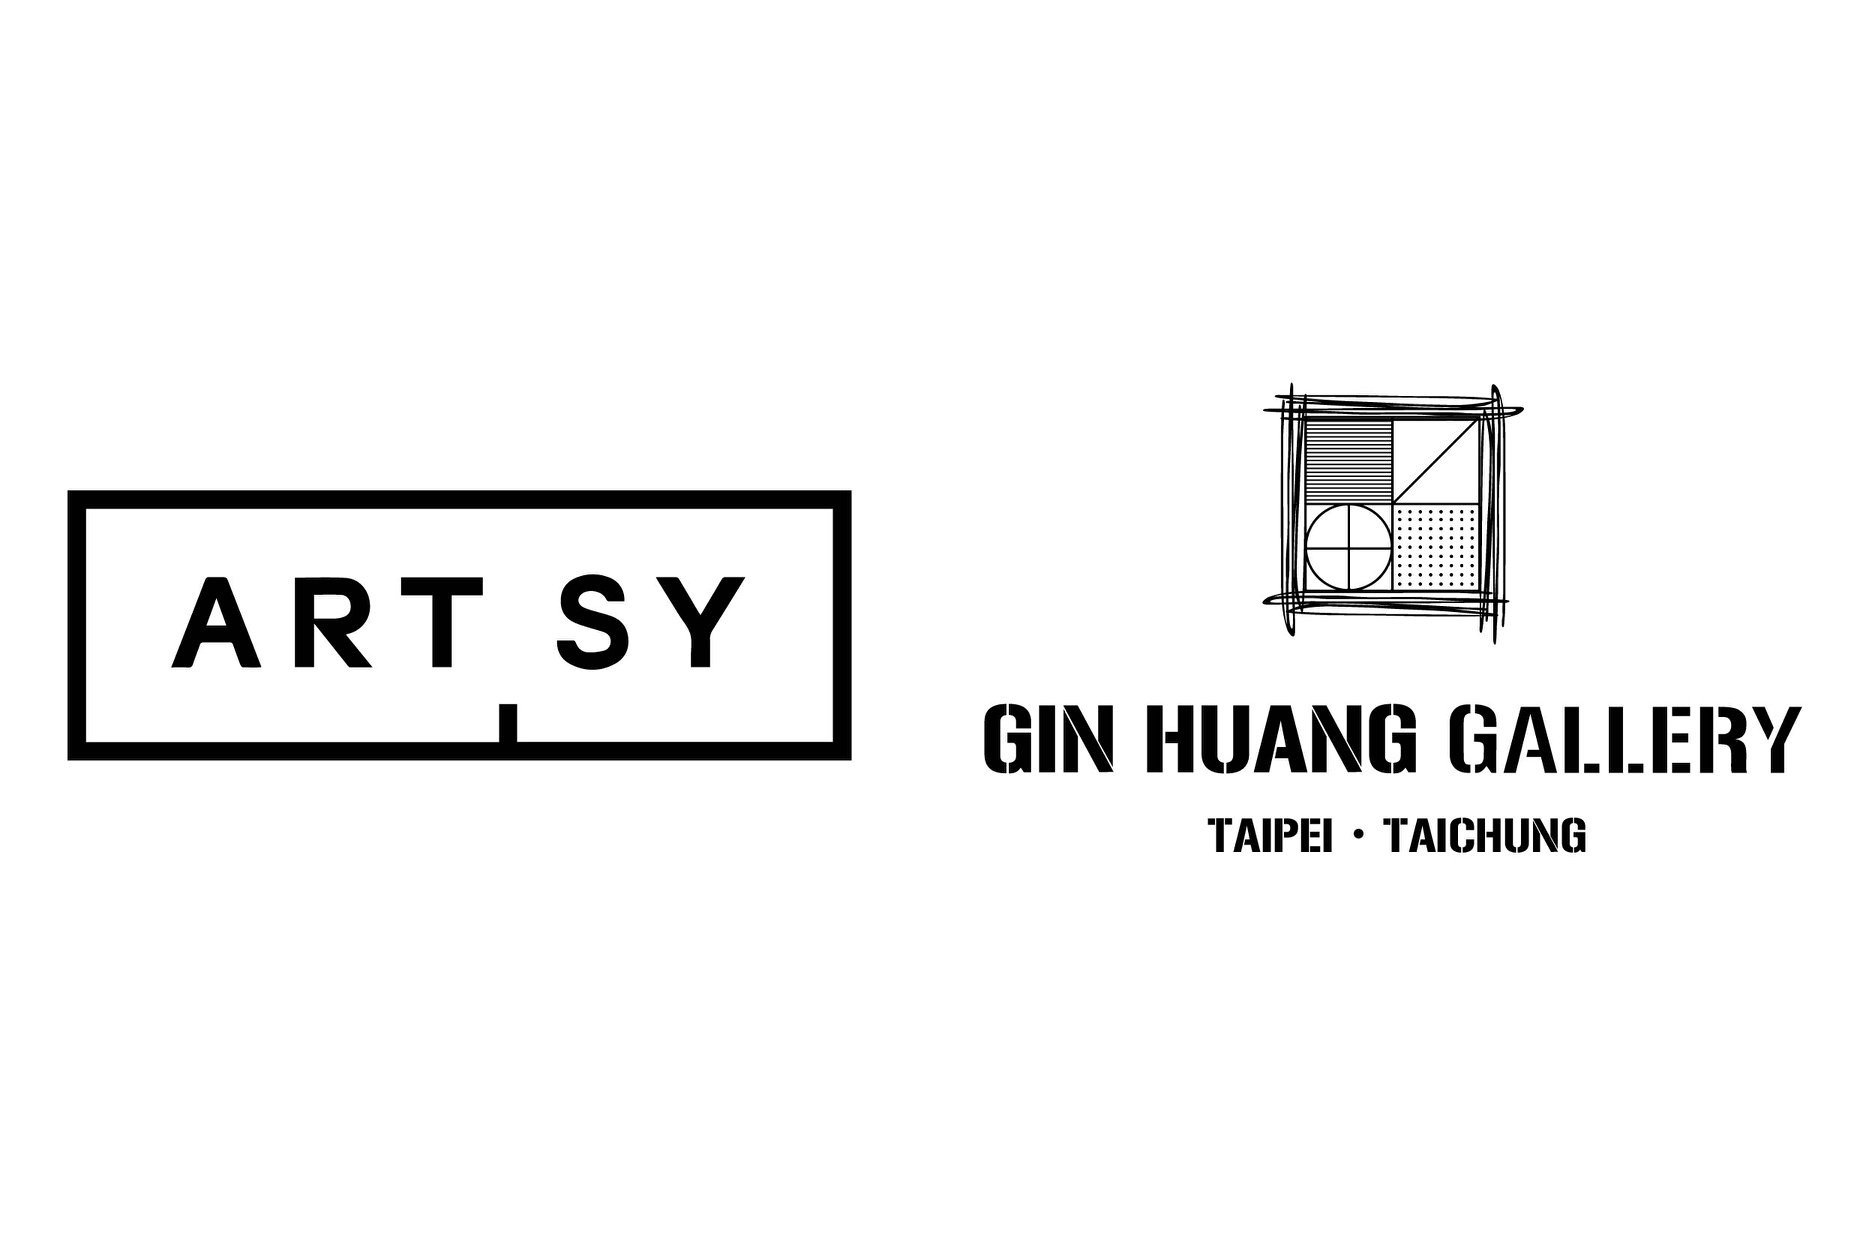 Artsy x Gin huang gallery co-declaration